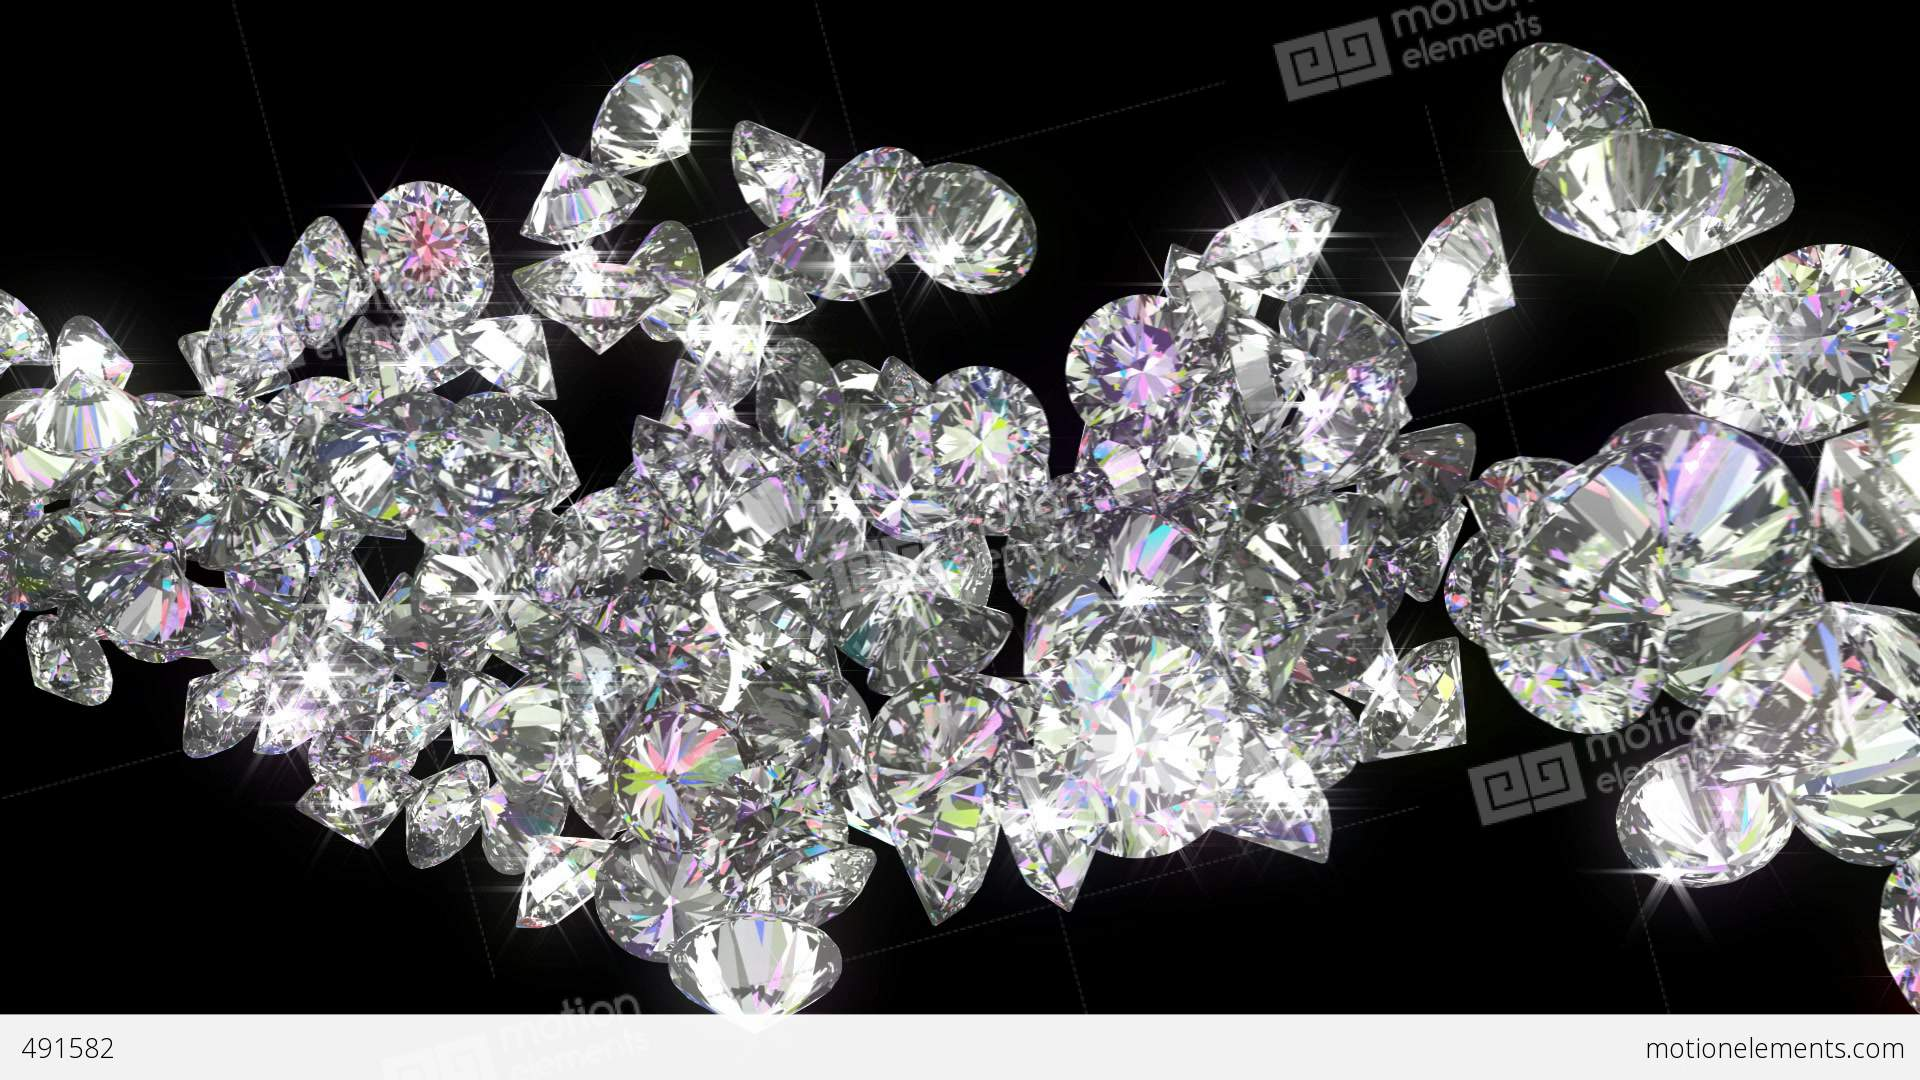 file bivc clipartdiamond hanging clipart chain included jewelry fullxfull string this is digital il listing a diamond